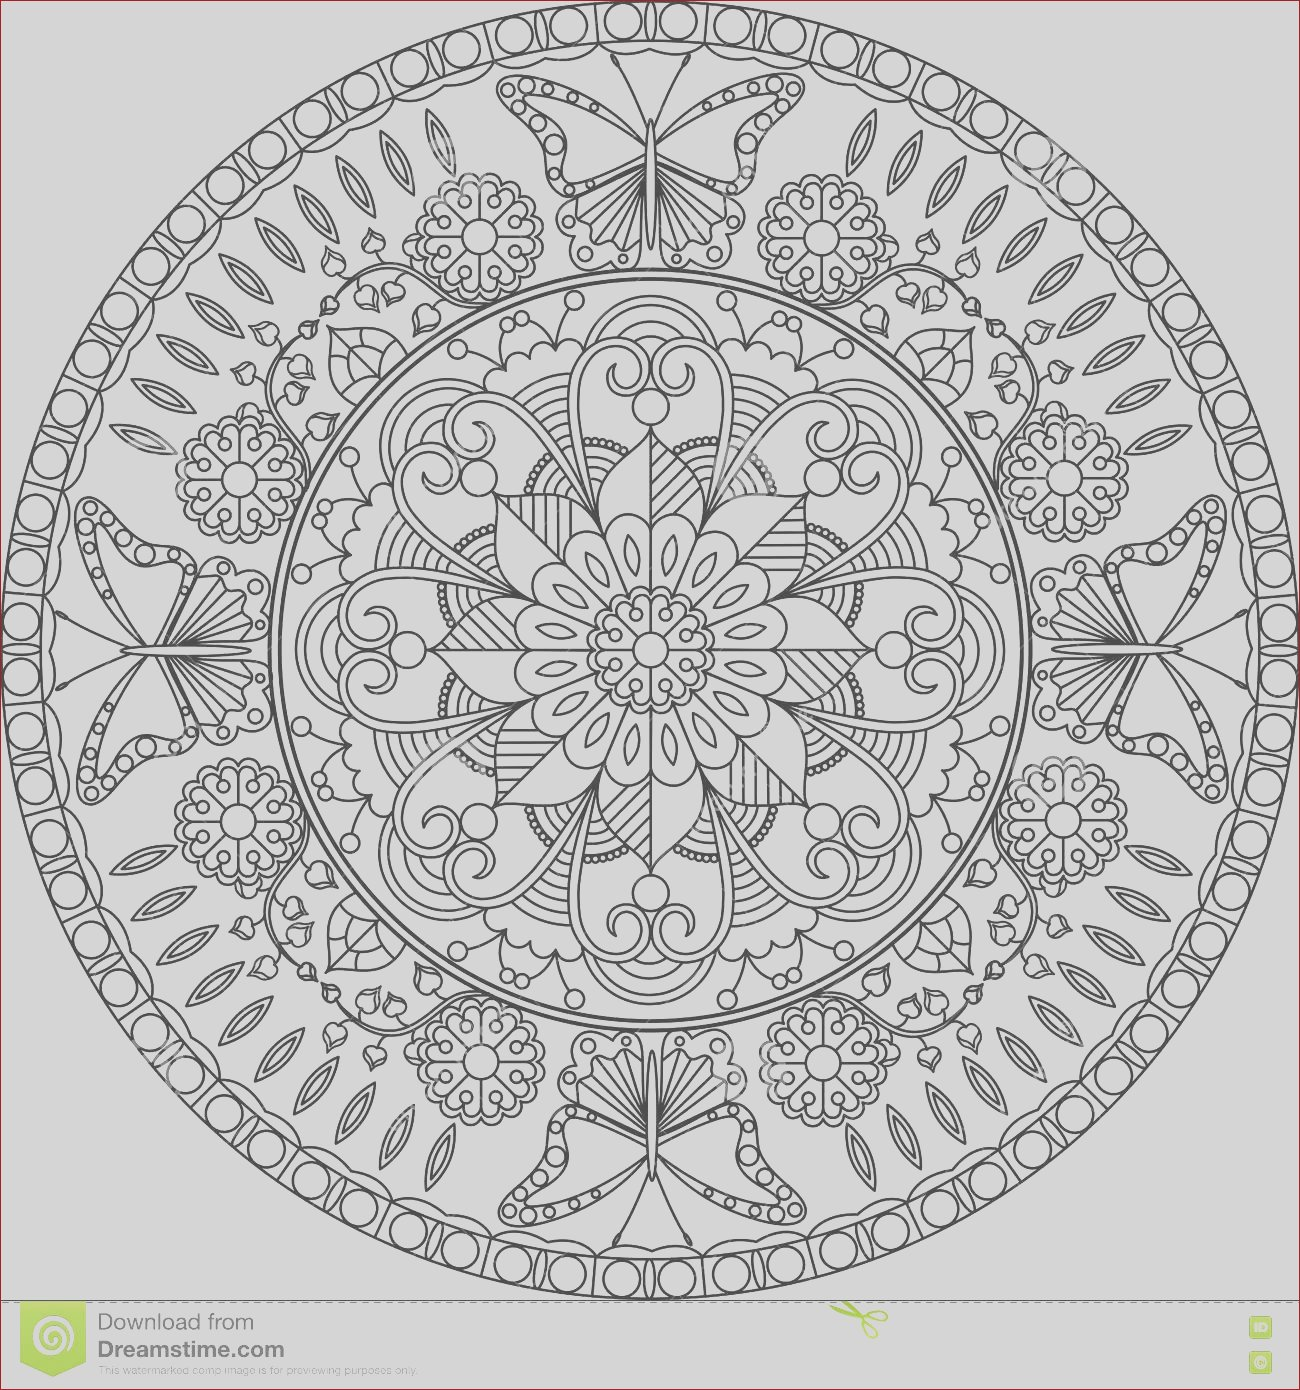 stock illustration adult coloring page mandala flowers butterflies book pages adults zentangle rest relaxing meditation illustration image